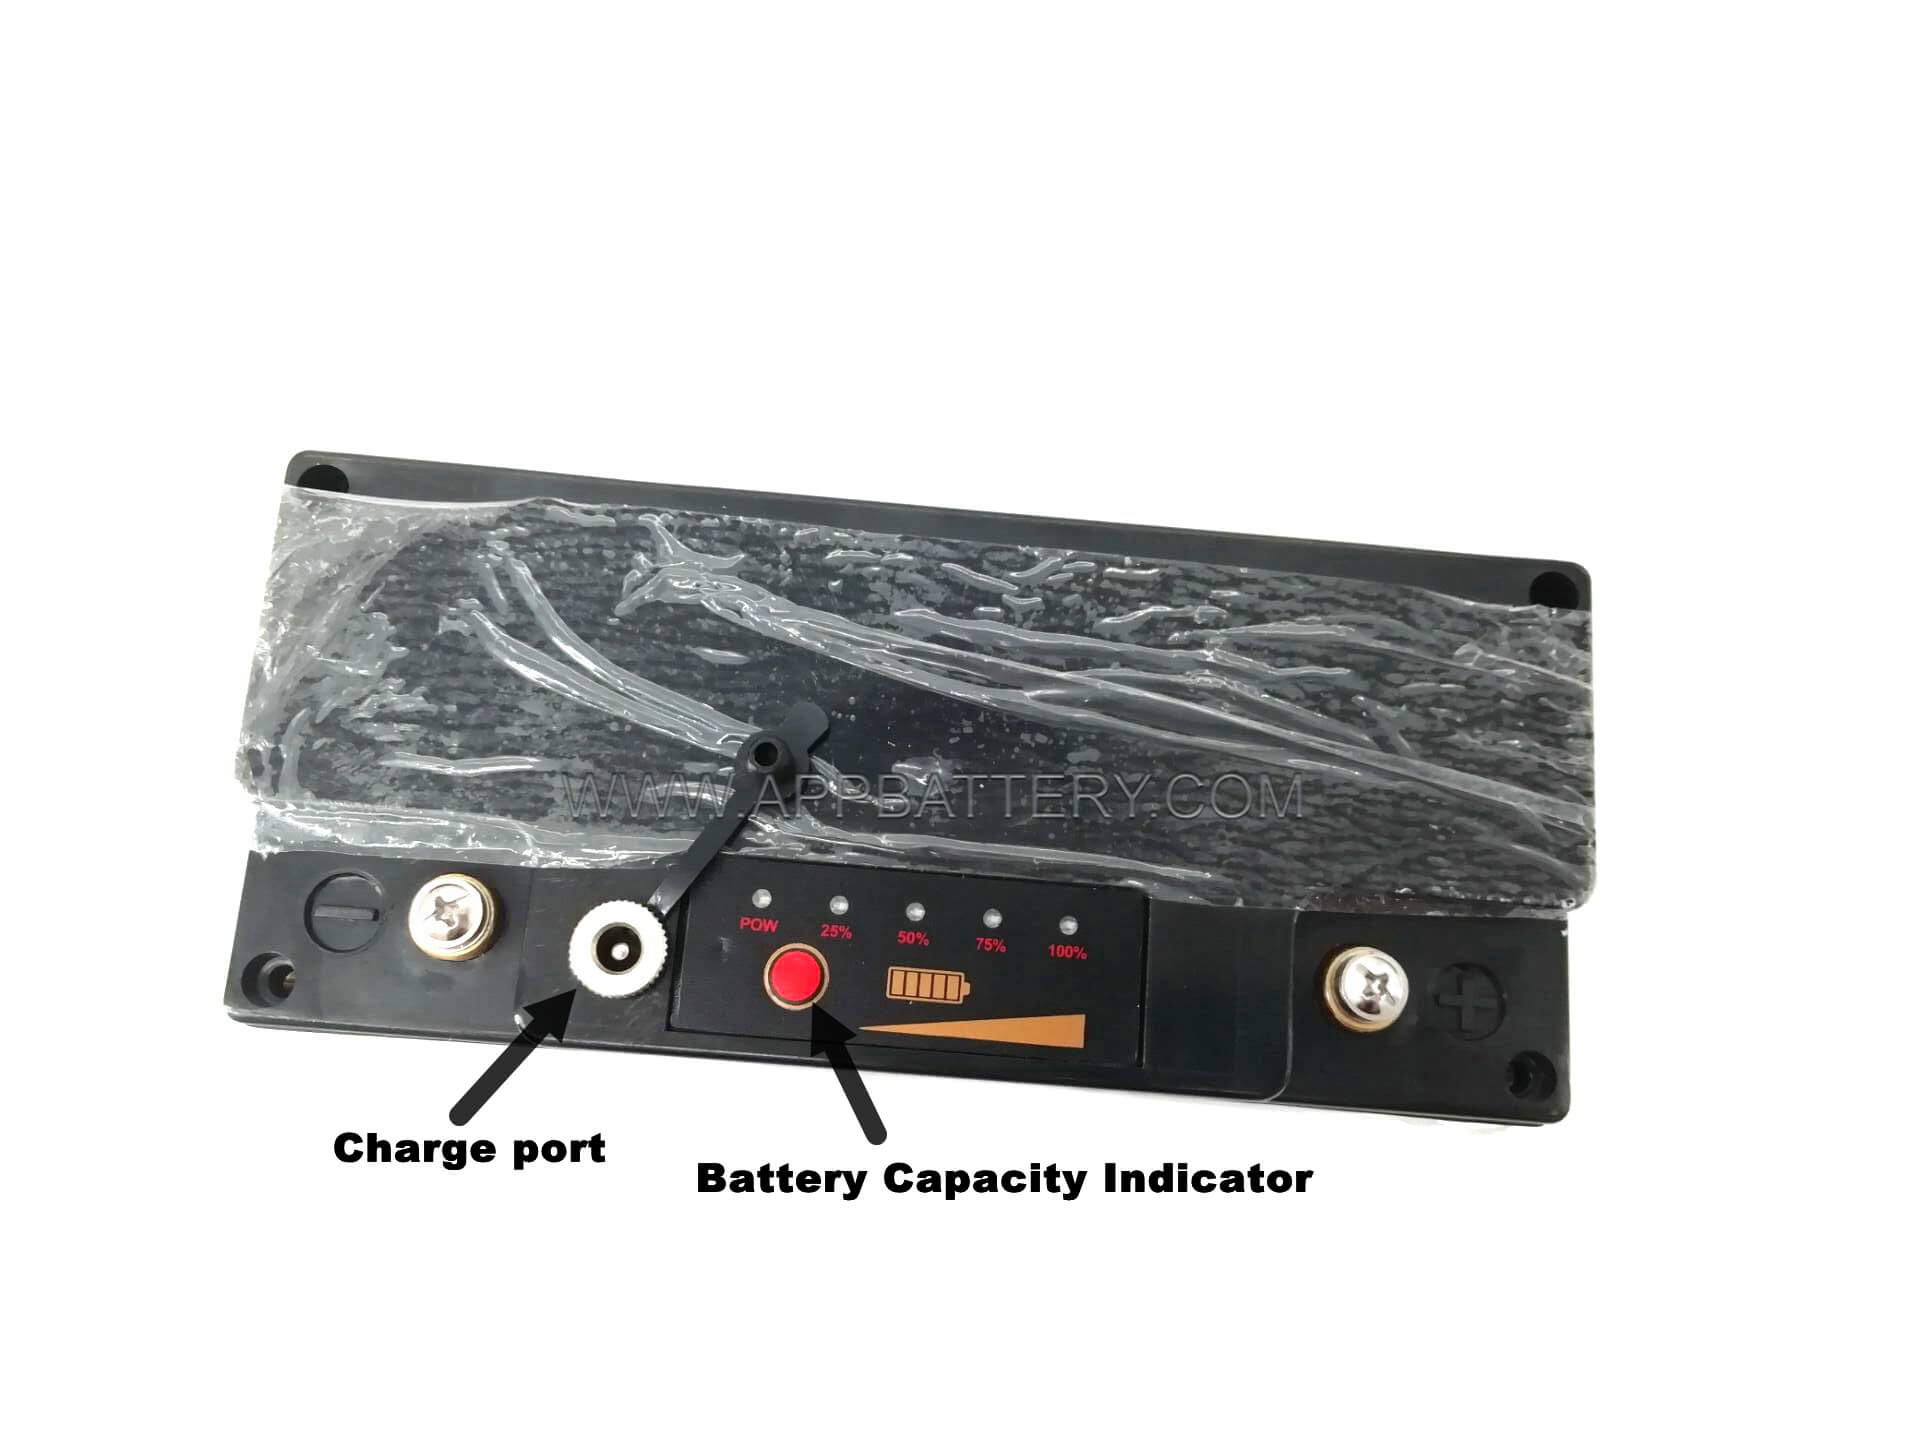 EJ12v20c battery box with charging port and battery capacity indicator